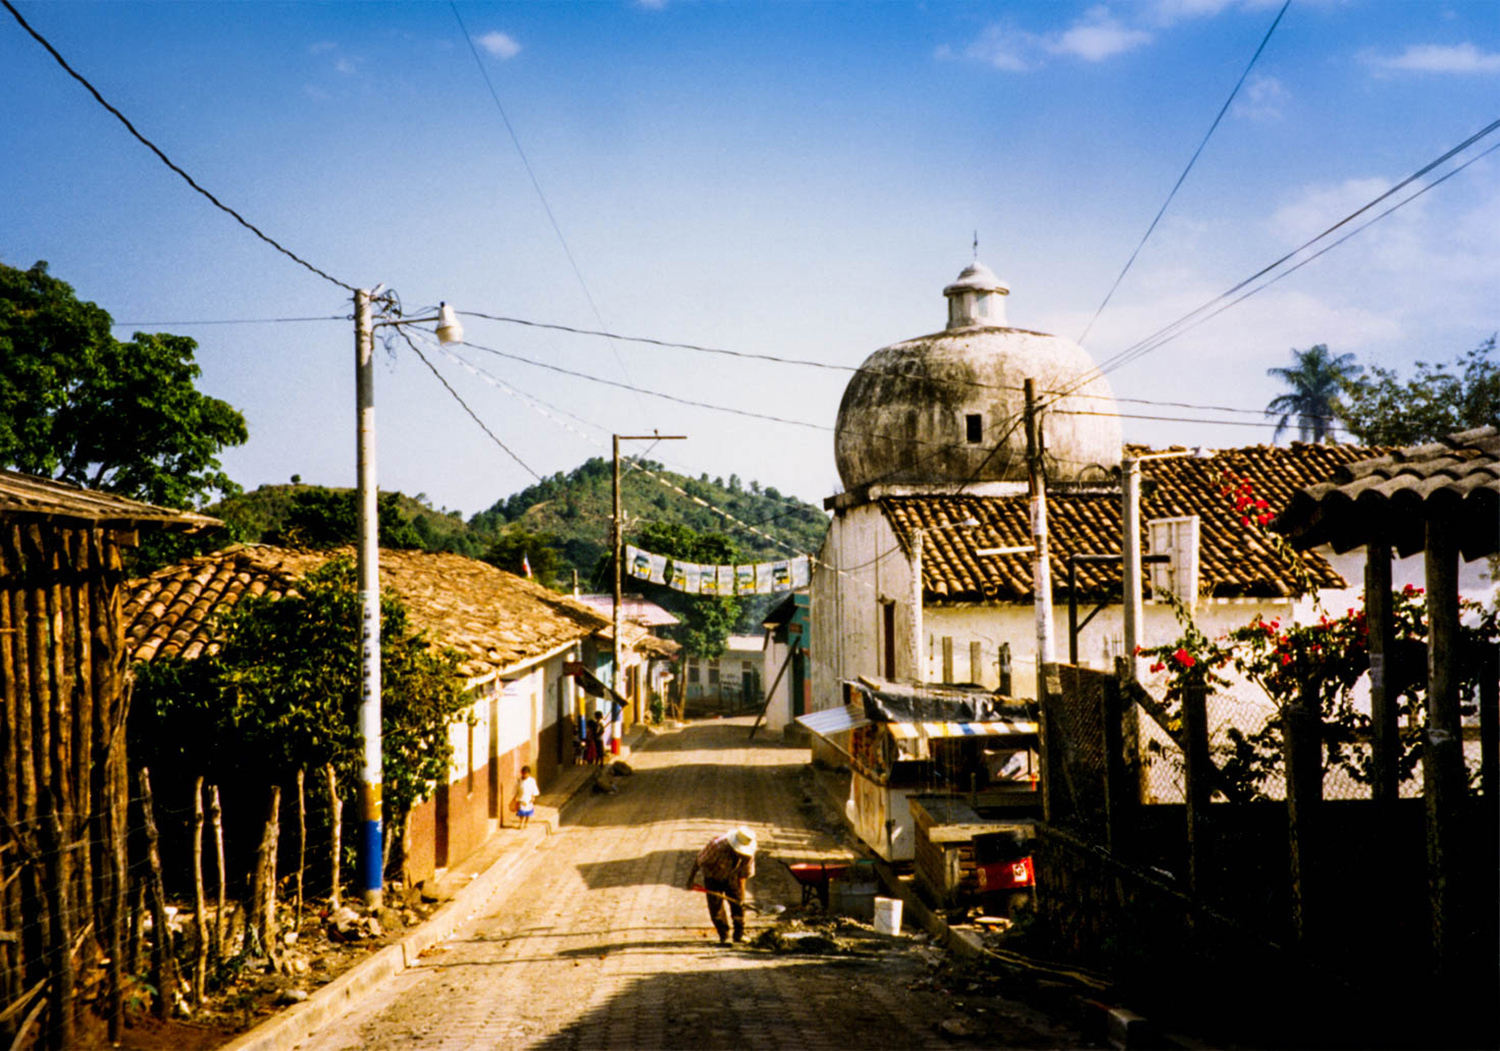 <p>Perquín, a town in the Morazán department of El Salvador, was a key stronghold of the FMLN guerrillas during the Salvadoran civil war of the 1980s. Today it hosts a museum dedicated to their revolutionary efforts.</p>